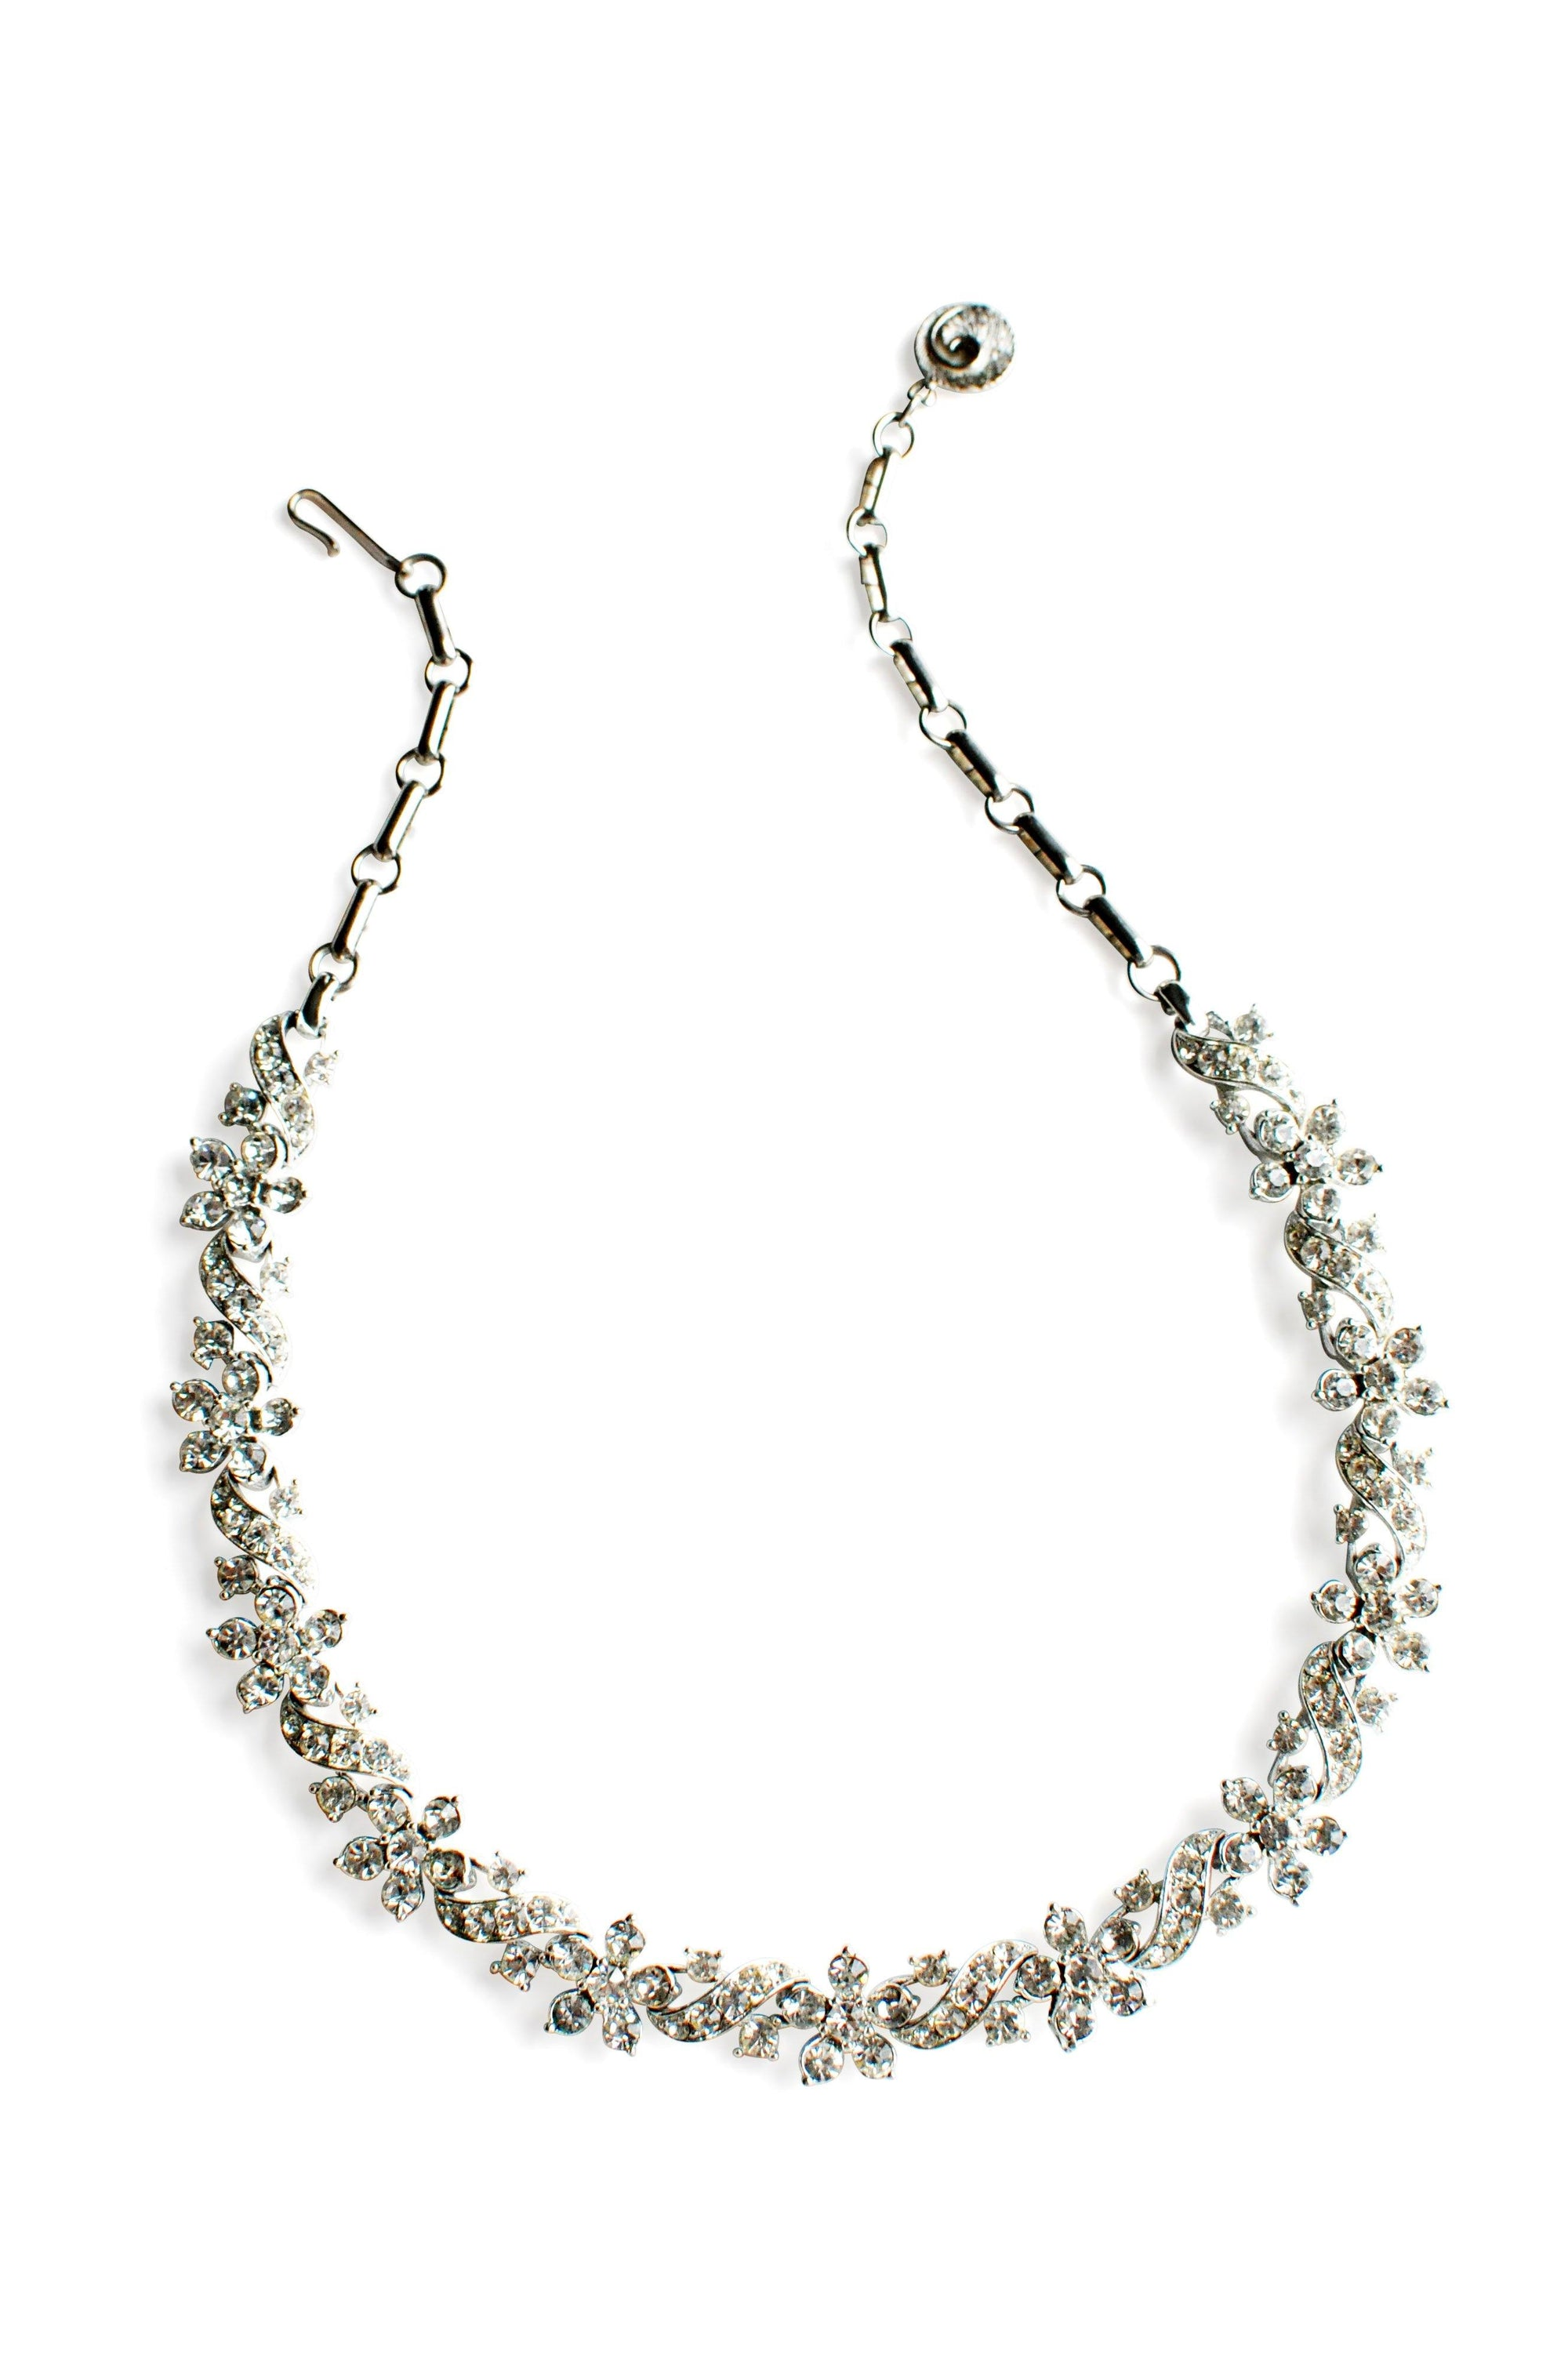 Lisner Silver Rhinestone Floral Link Necklace from Sweet & Spark